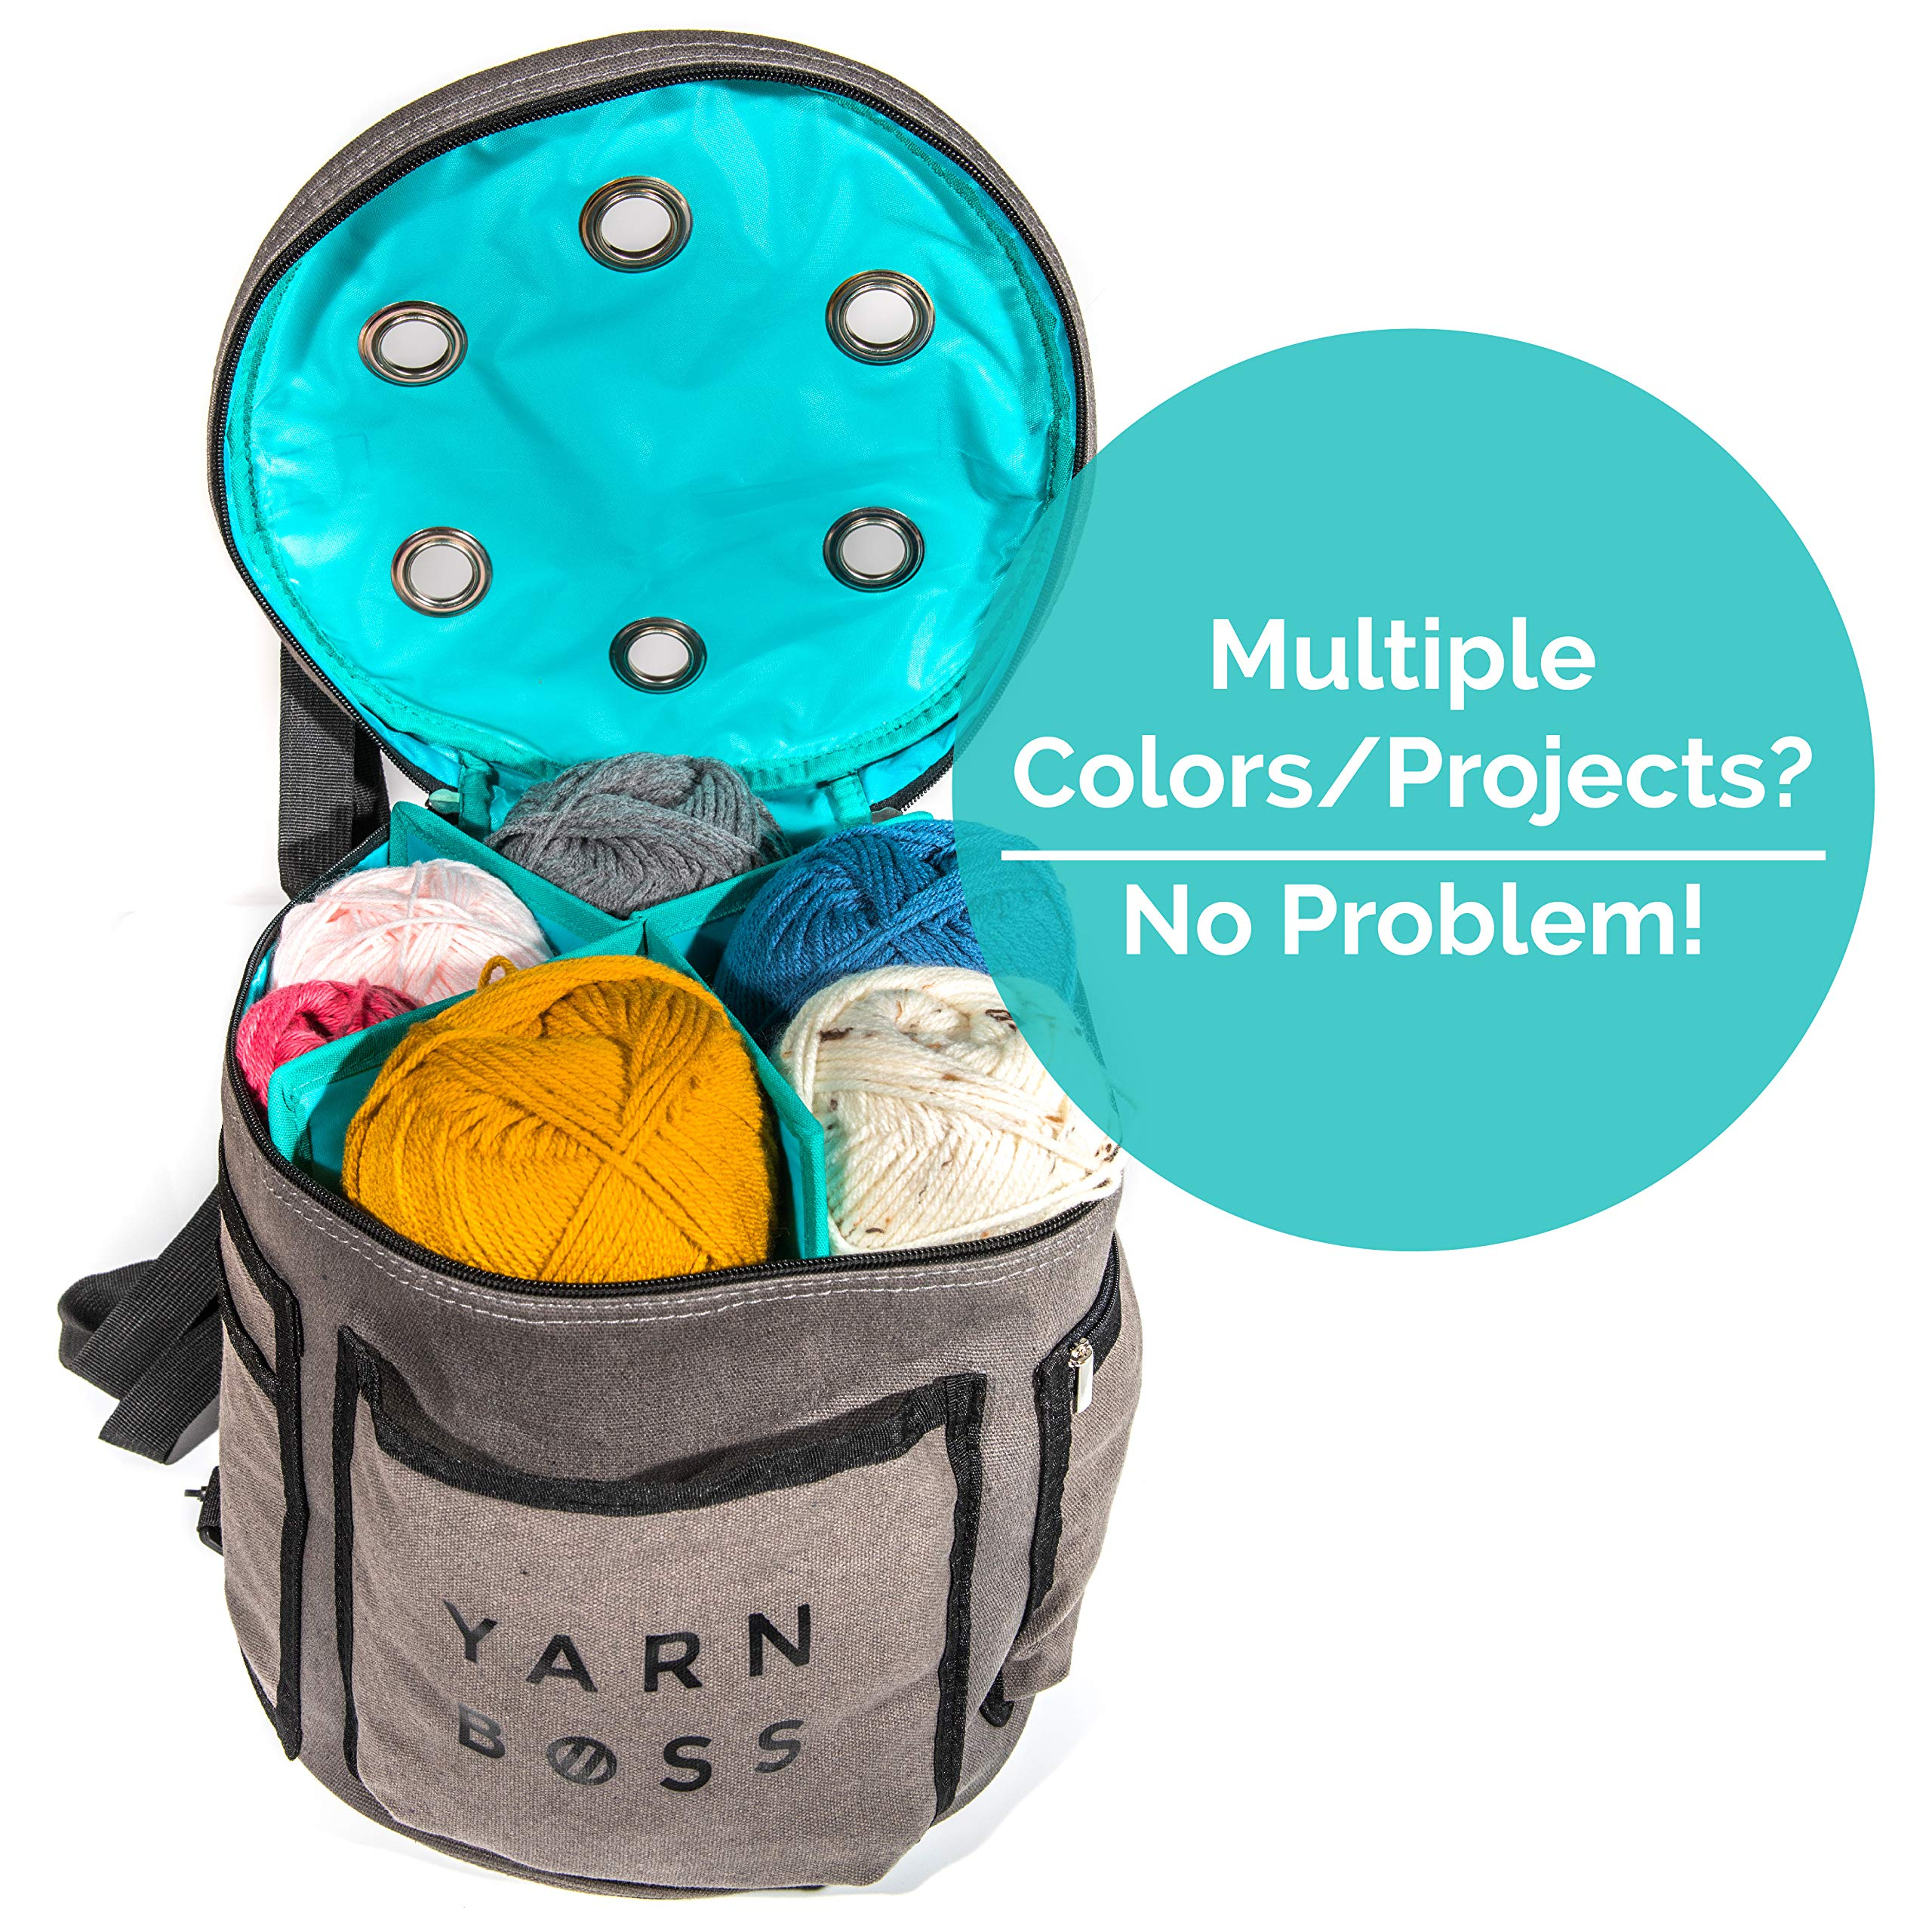 Yarn Boss Yarn Bag, Travel With Yarn and all Notions - Yarn Storage To Organize Multiple Projects and Keep Your Yarn Safe and Clean - Wide Grommets Stop Tangling for Best Crochet Bag or Knitting Bag by Yarn Boss (Image #4)